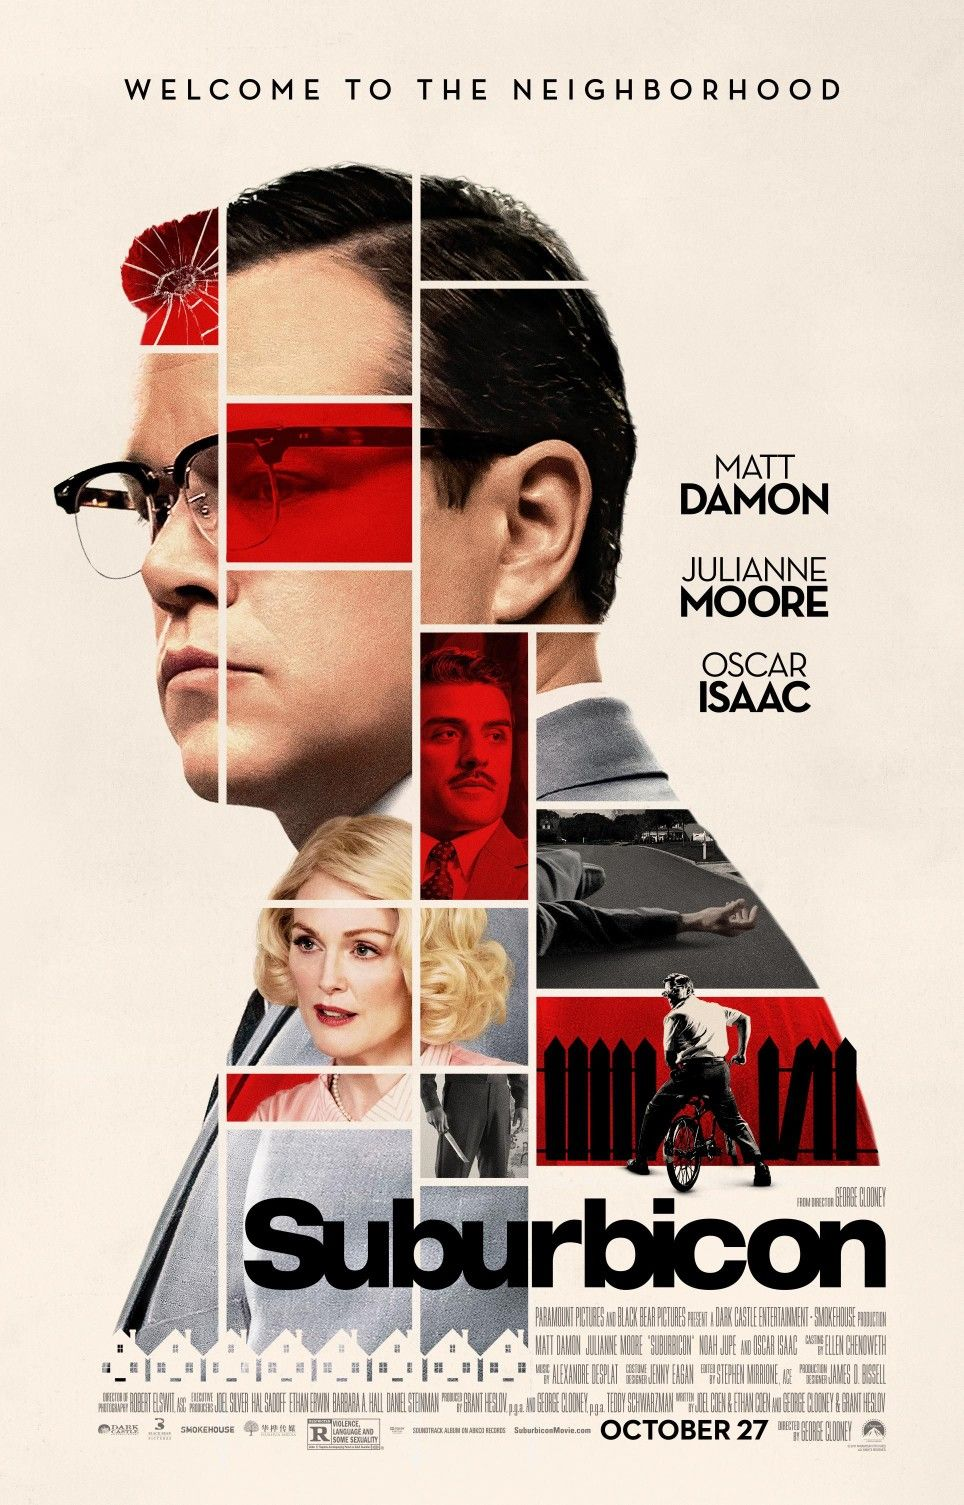 George Clooney S Suburbicon Is A 2017 American Black Comedy